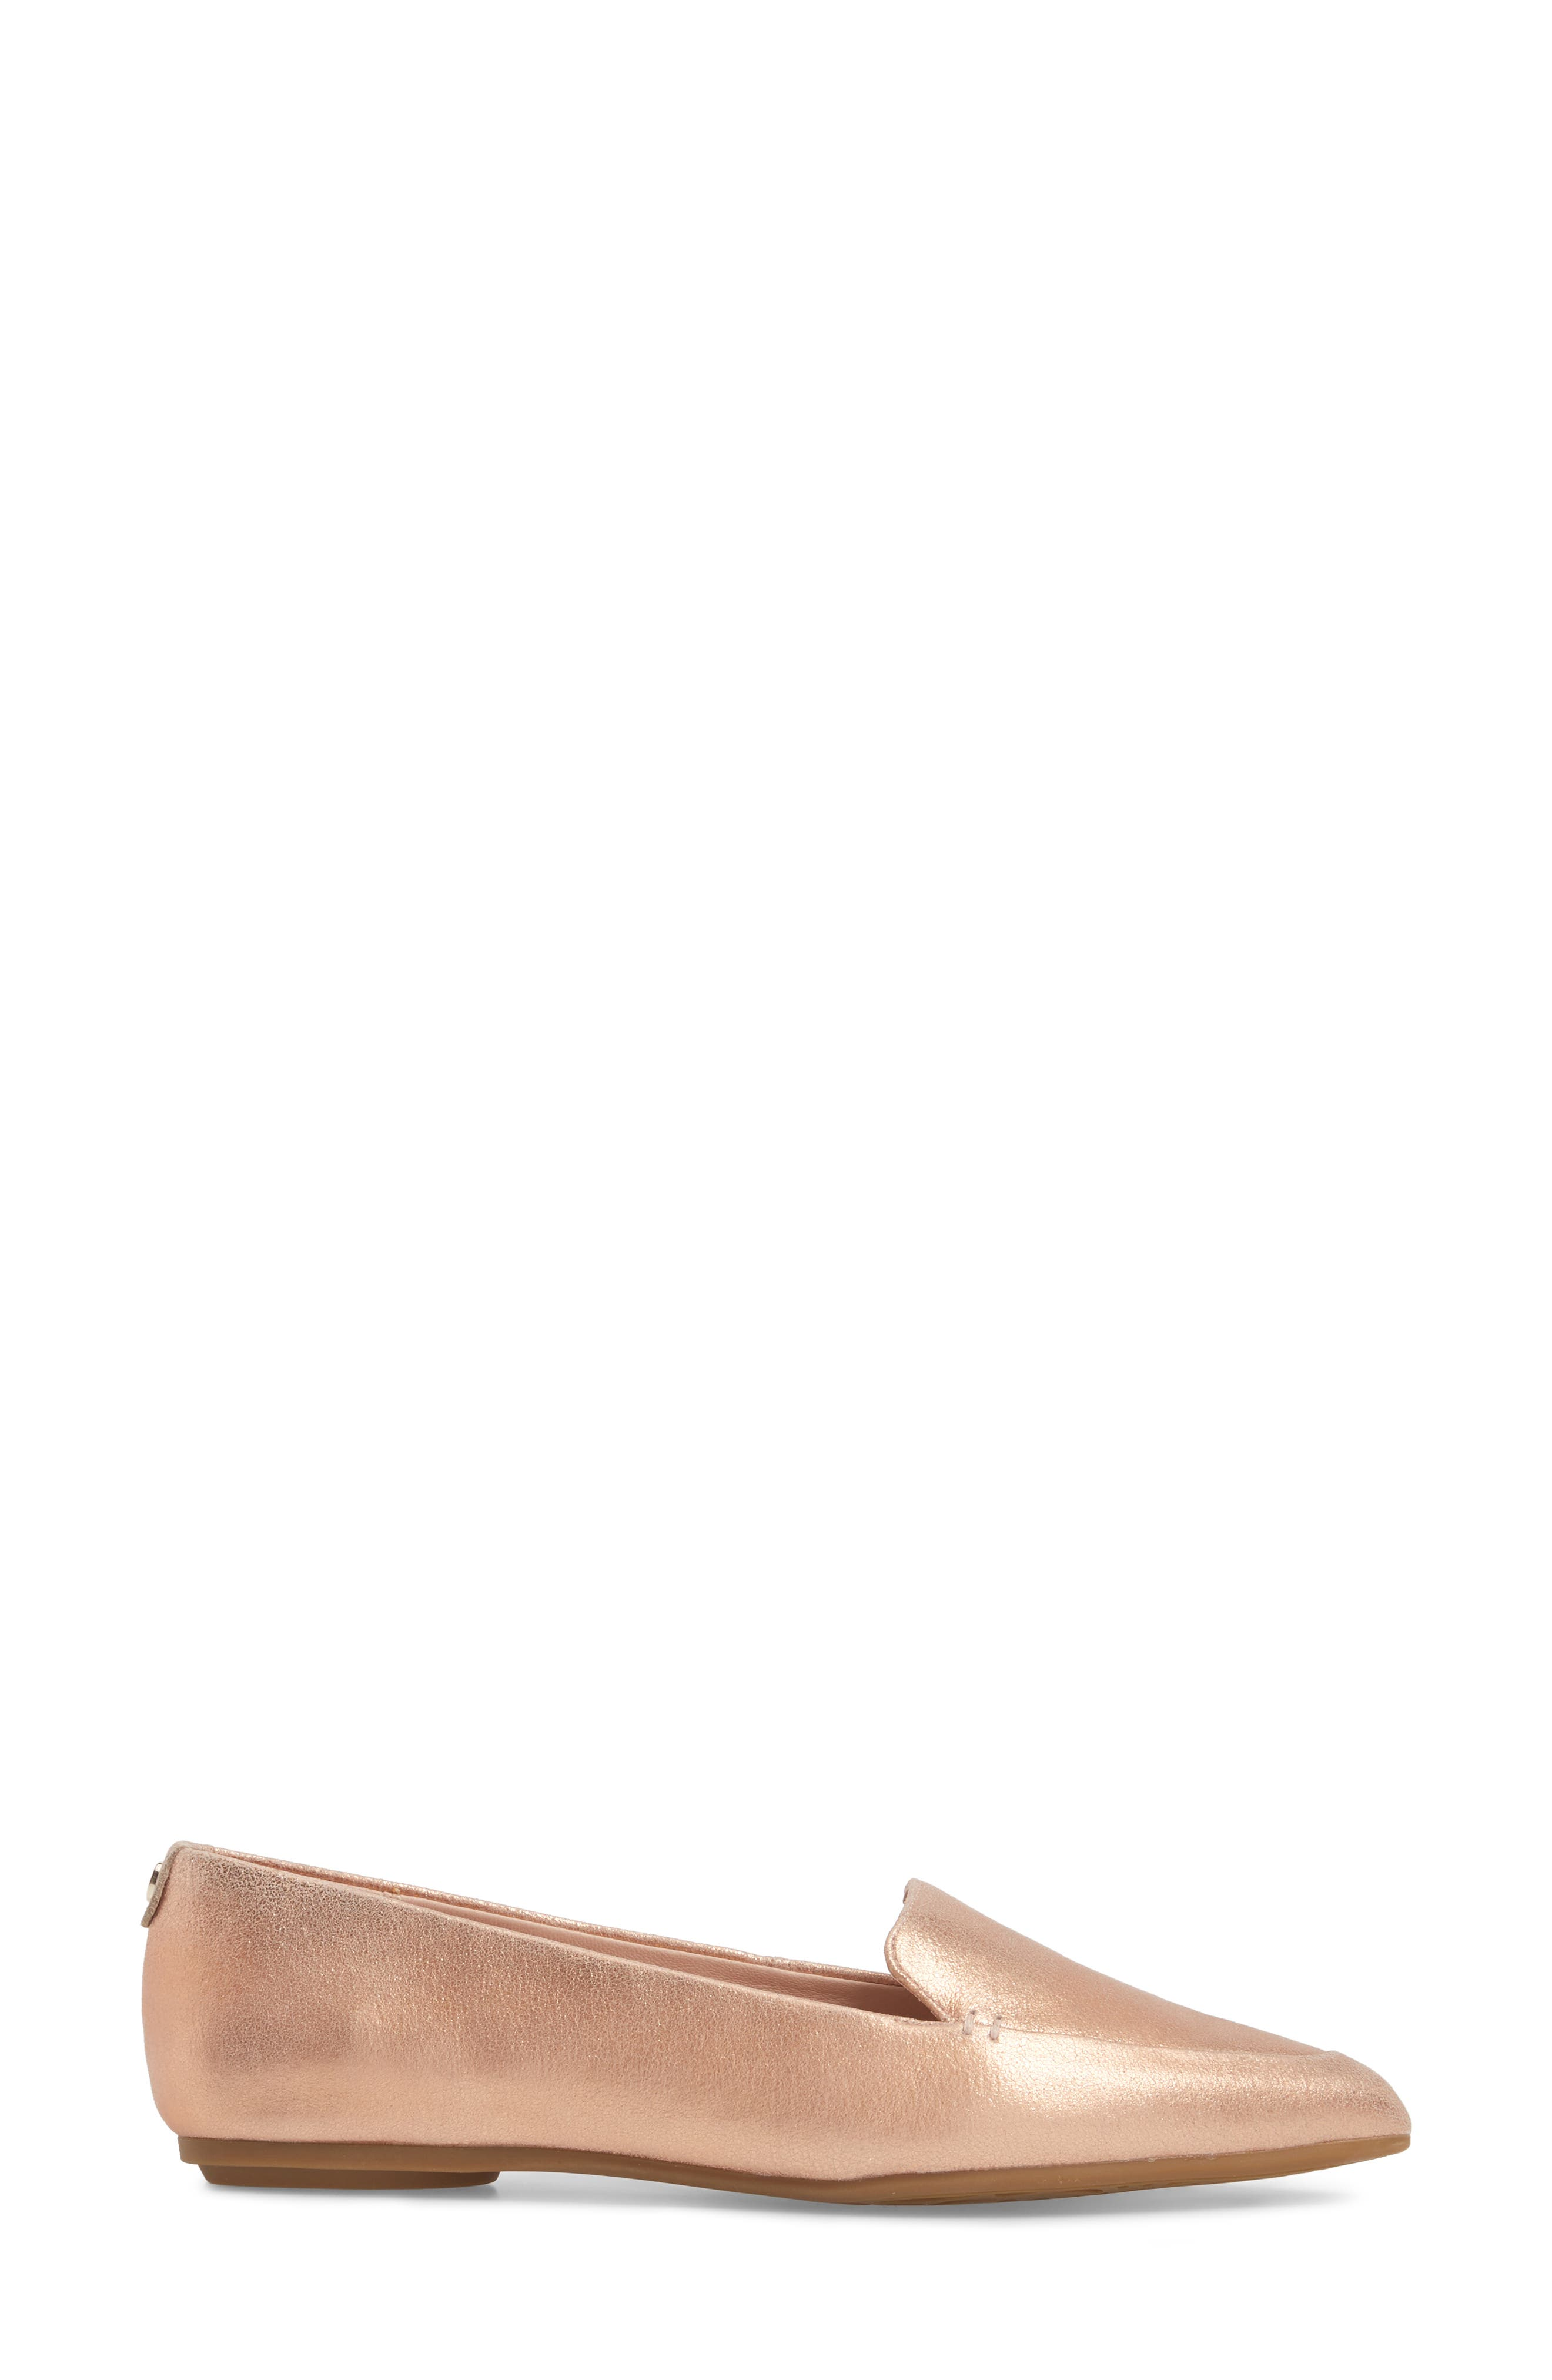 Faye Pointy Toe Loafer,                             Alternate thumbnail 3, color,                             Rose Gold Metallic Leather